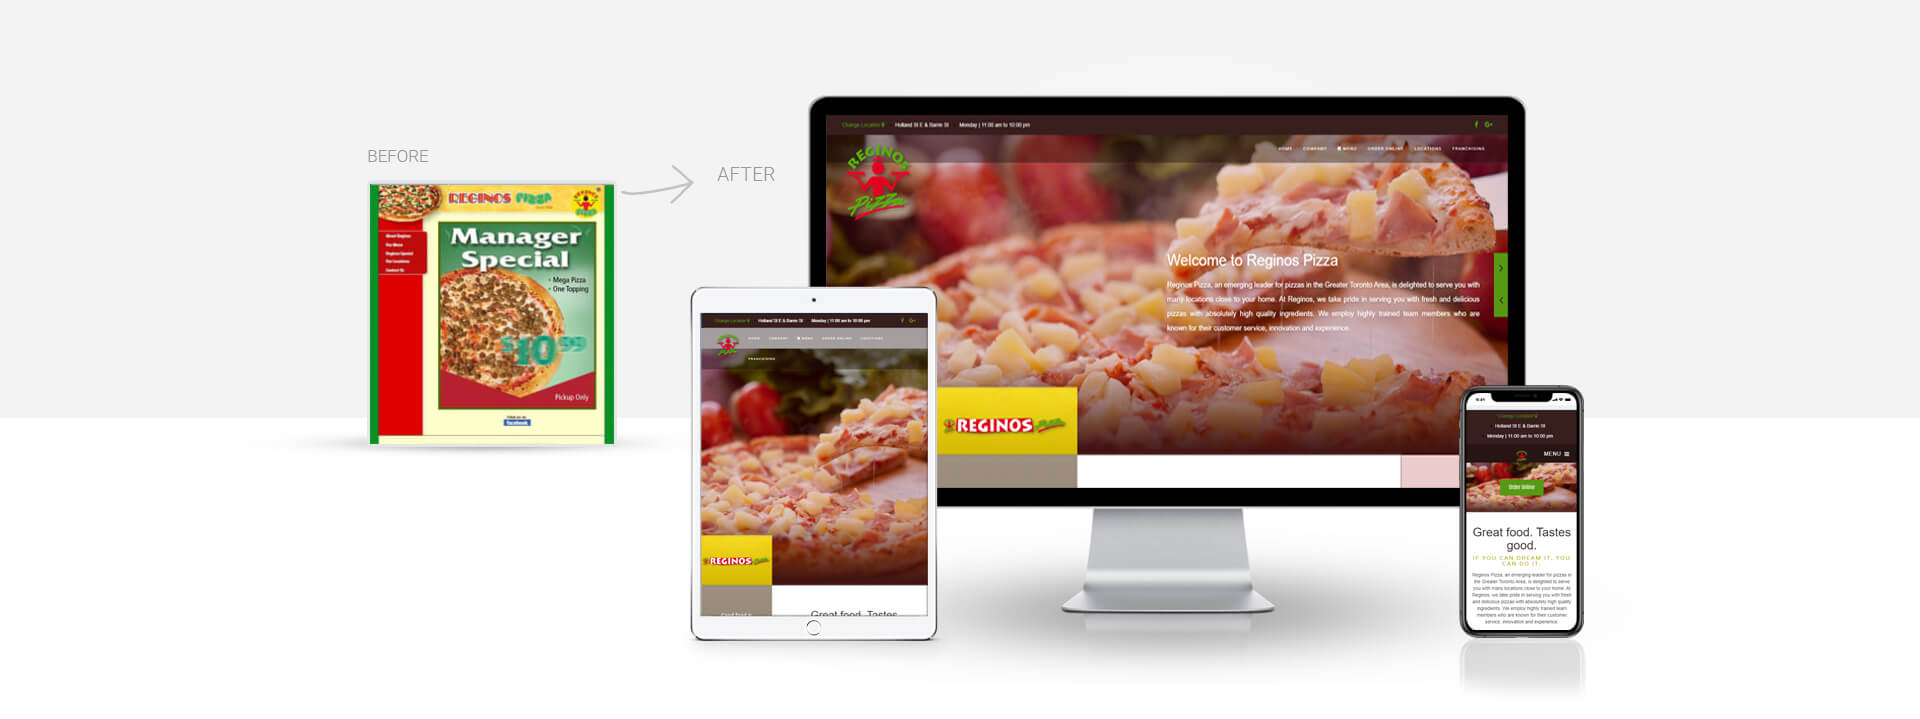 Custom pizza parlour website